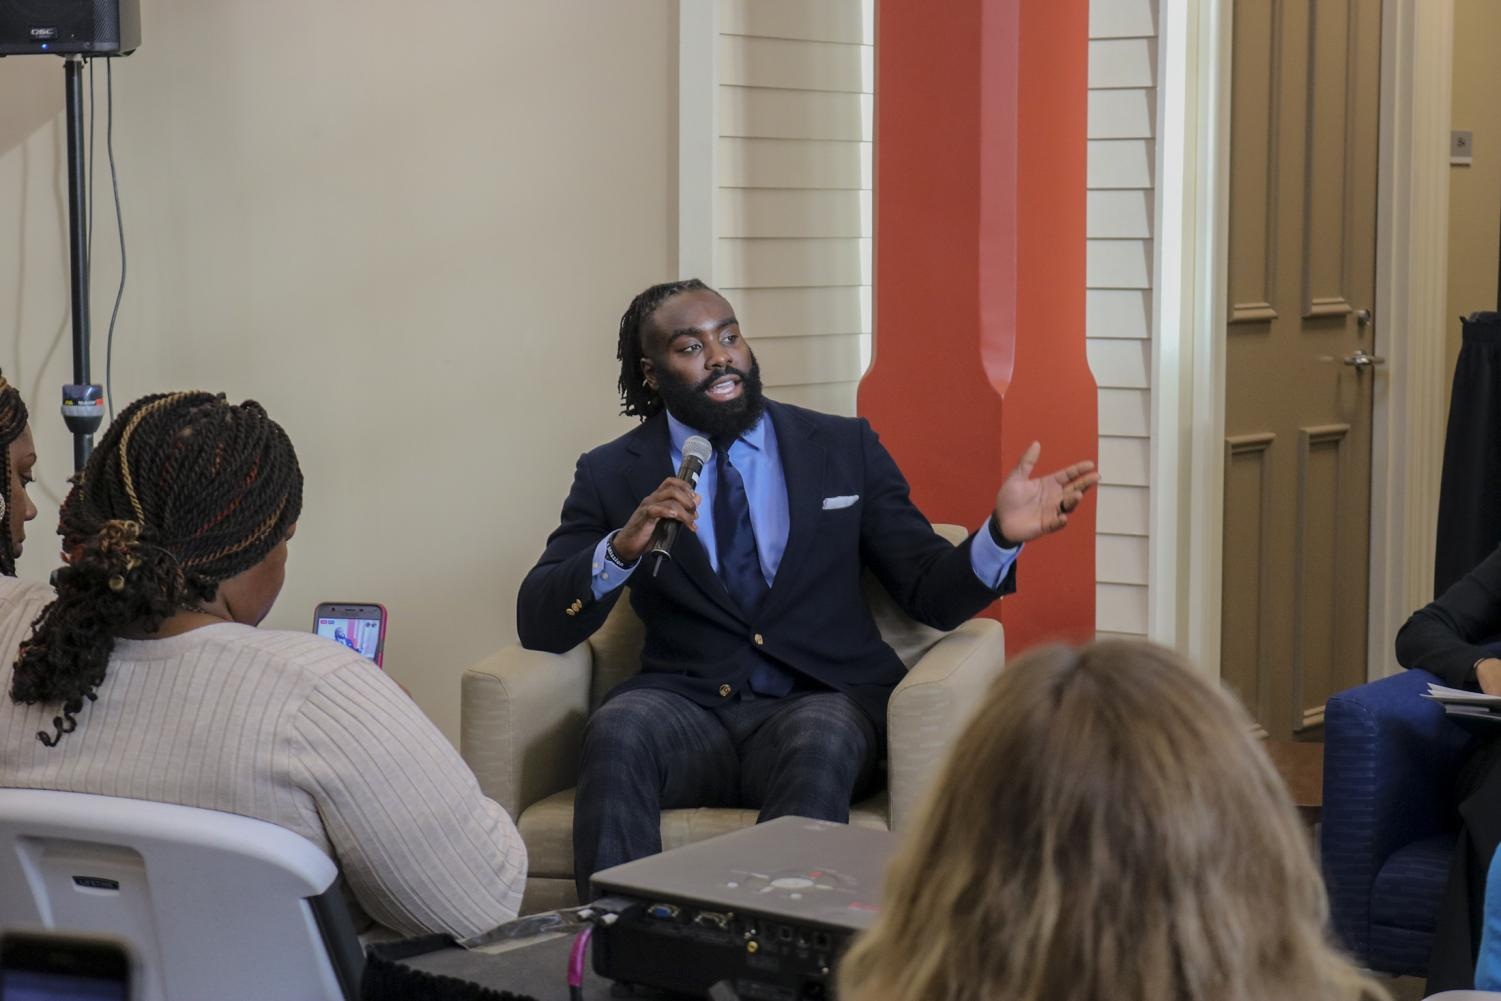 New Orleans Saints Linebacker Demario Davis talks at a town hall meeting on November 5, 2019 at Corpus Christi Church. The meeting was to raise awareness for the budget issues Orleans Public Defenders are facing. Photo credit: Andres Fuentes